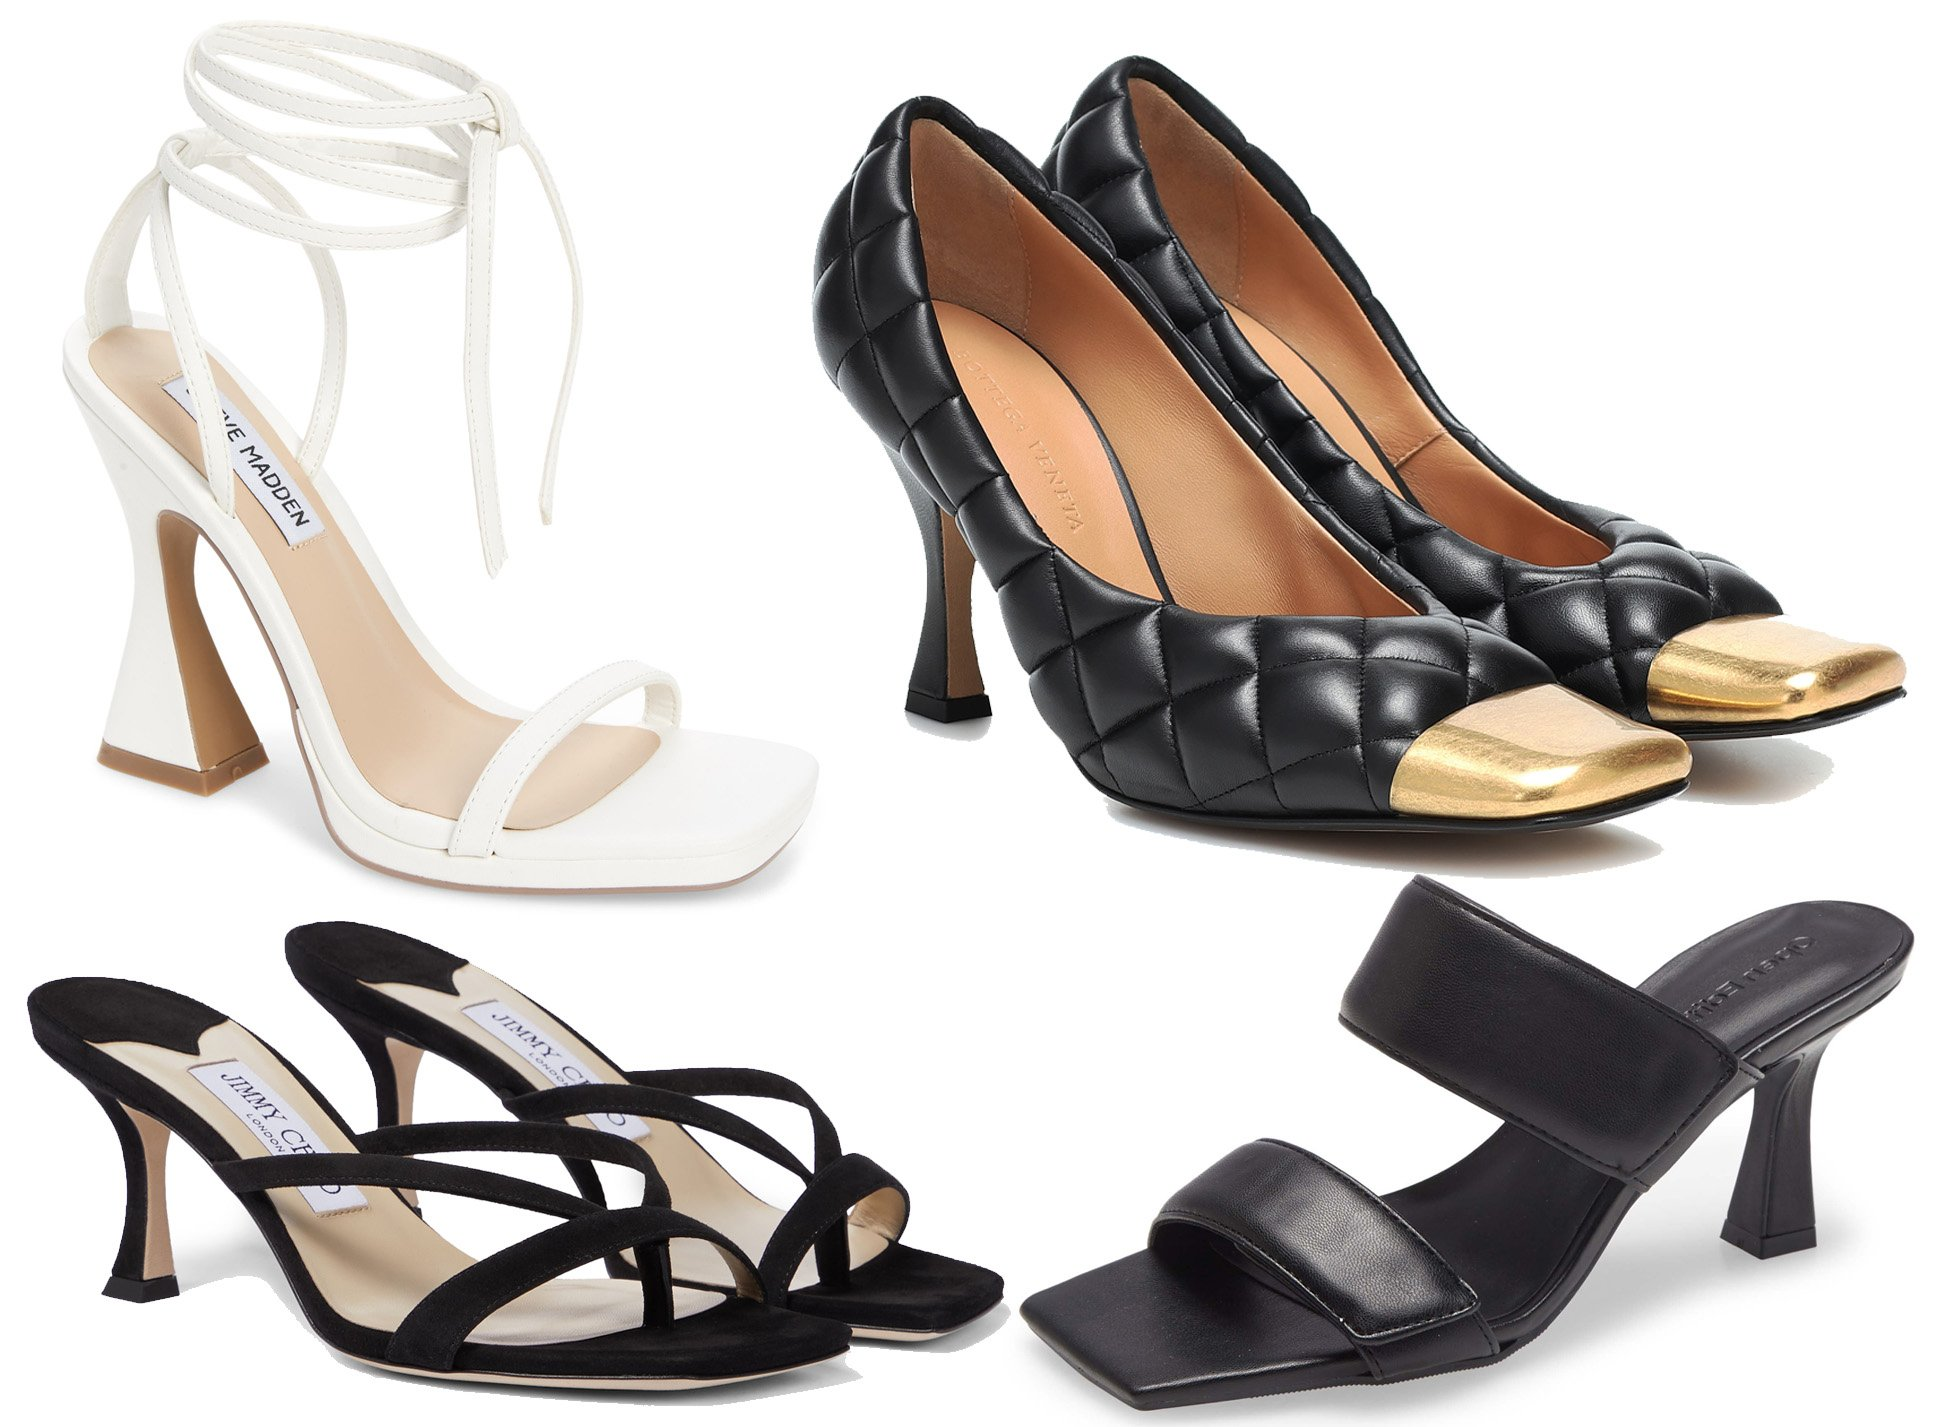 Named after the spool, spool heels have a curvy hourglass shape similar to French heels but higher